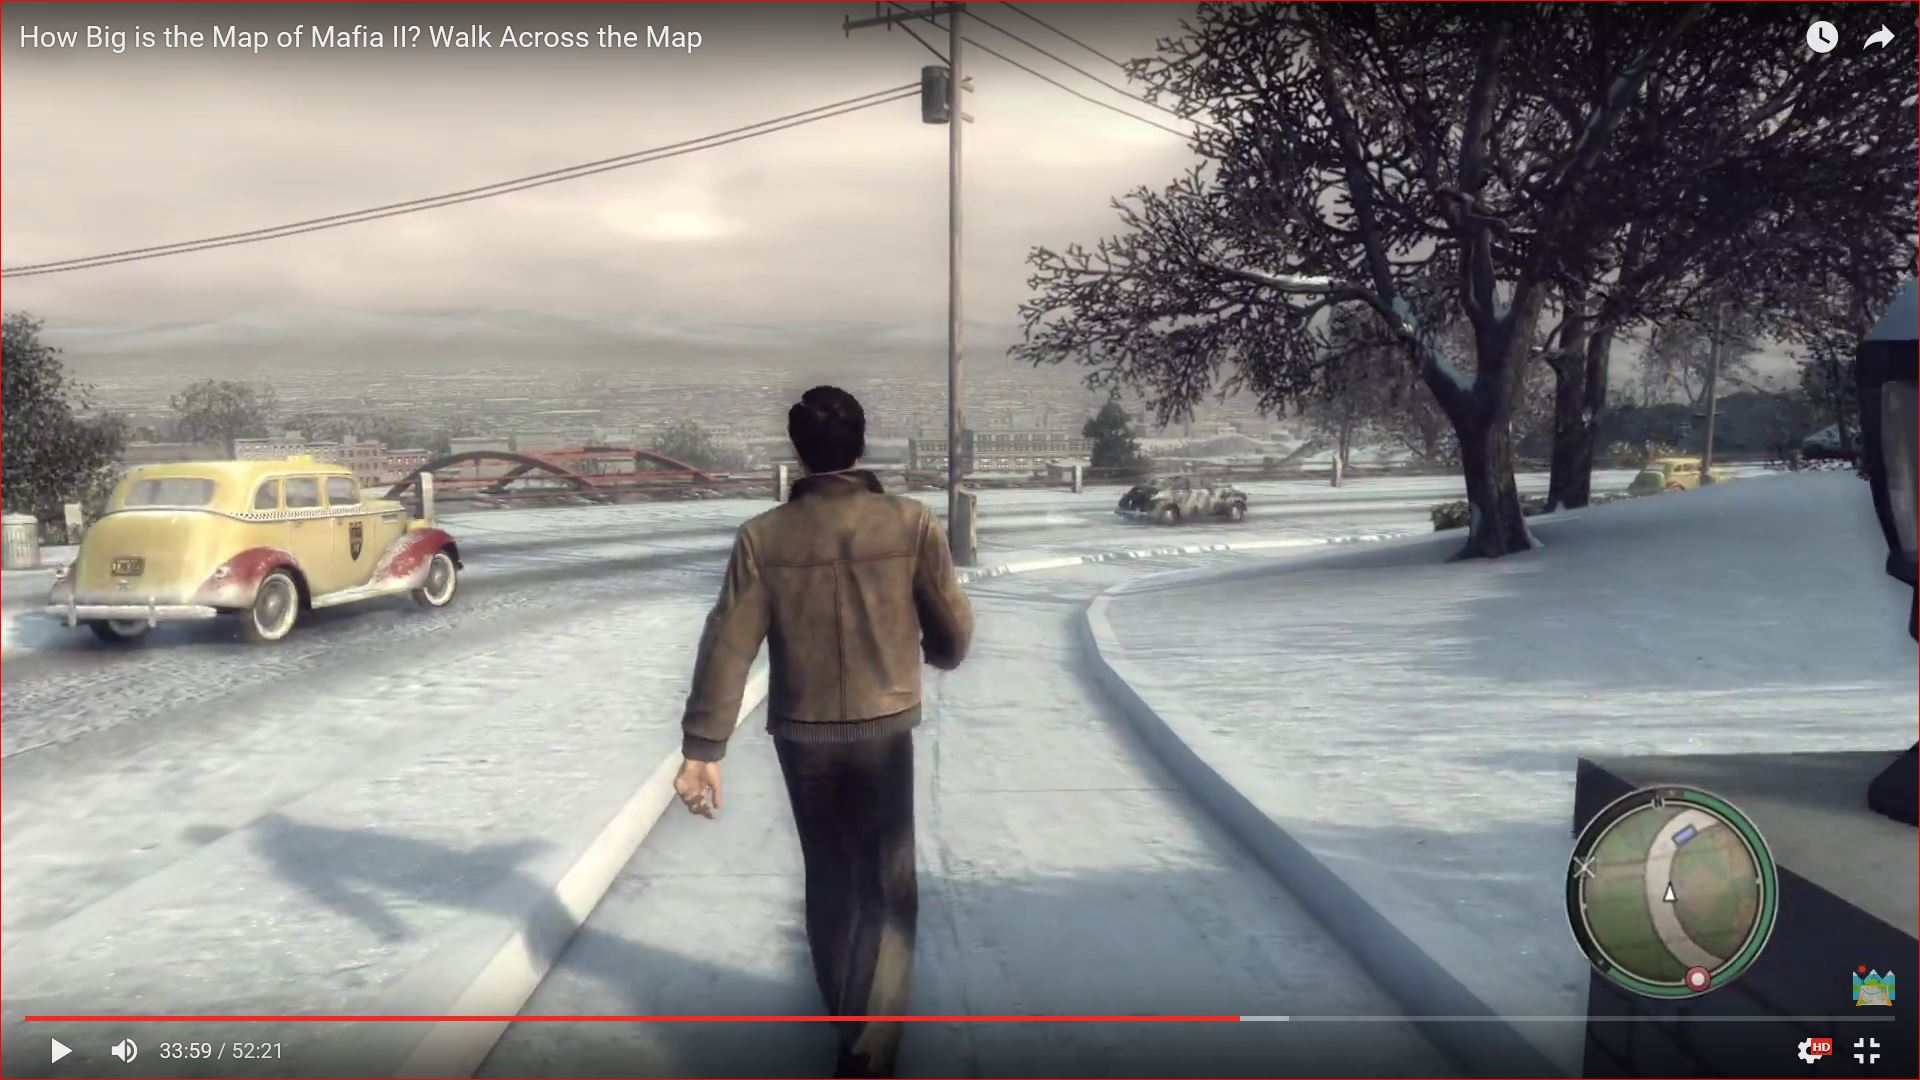 Mafia 2 walk g - How Big is the Map on call of duty 2 map, the sims 3, mass effect 2, the darkness, lord of the rings online map, mario 2 map, mercenaries 2 world in flames map, mafia ii wanted poster locations, manhunt 2 map, hearts of iron 3 map, just cause 2 map, metal gear solid 2 map, grand theft auto iii, la noire map, the getaway, dragon's dogma map, halo 2 map, neverwinter nights 2 map, the godfather 2 map, red dead revolver, mafia 3 trailer, kyrat far cry 4 map, fallen angel sacred 2 map, medal of honor, gta 4 map, gta 5 map, saints row 2 map, the elder scrolls v: skyrim, the godfather: the game, scarface: the world is yours, far cry 2, mafia: the city of lost heaven, red dead redemption,